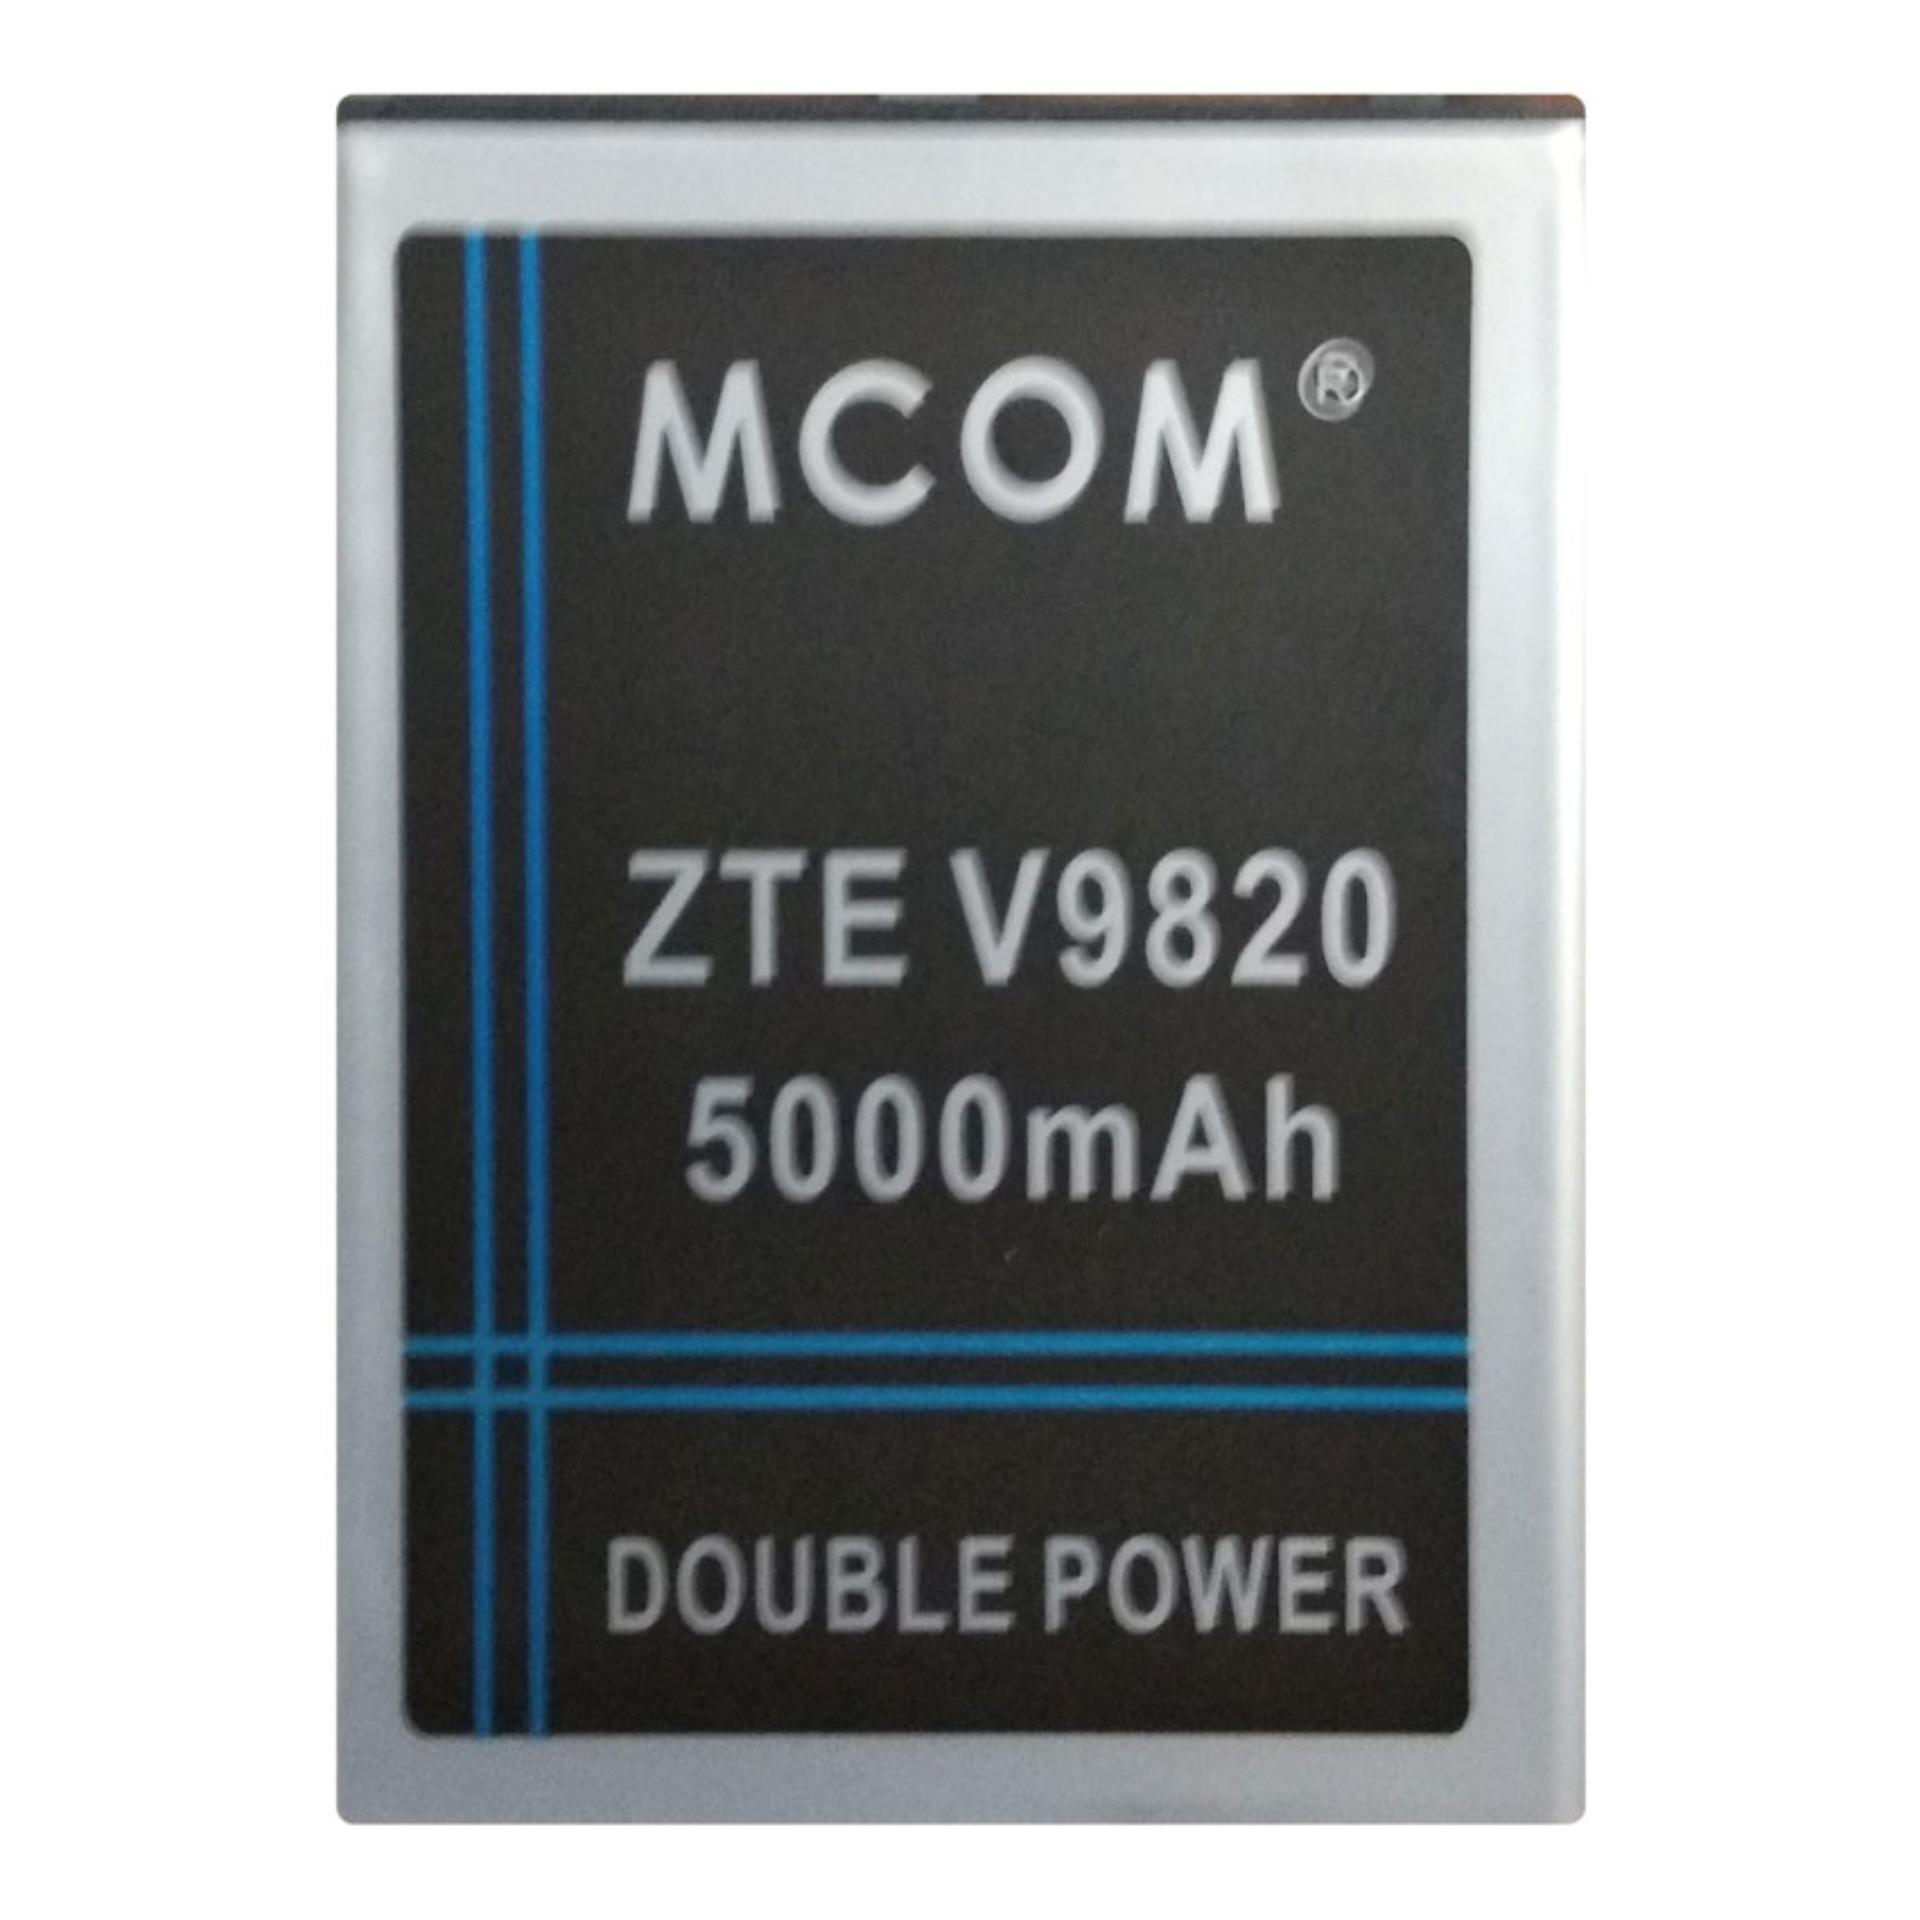 M-Com Baterai Double Power Battery for ZTE Blade A5 / Bolt Powerphone V9820 V9802 - 5000 mAh